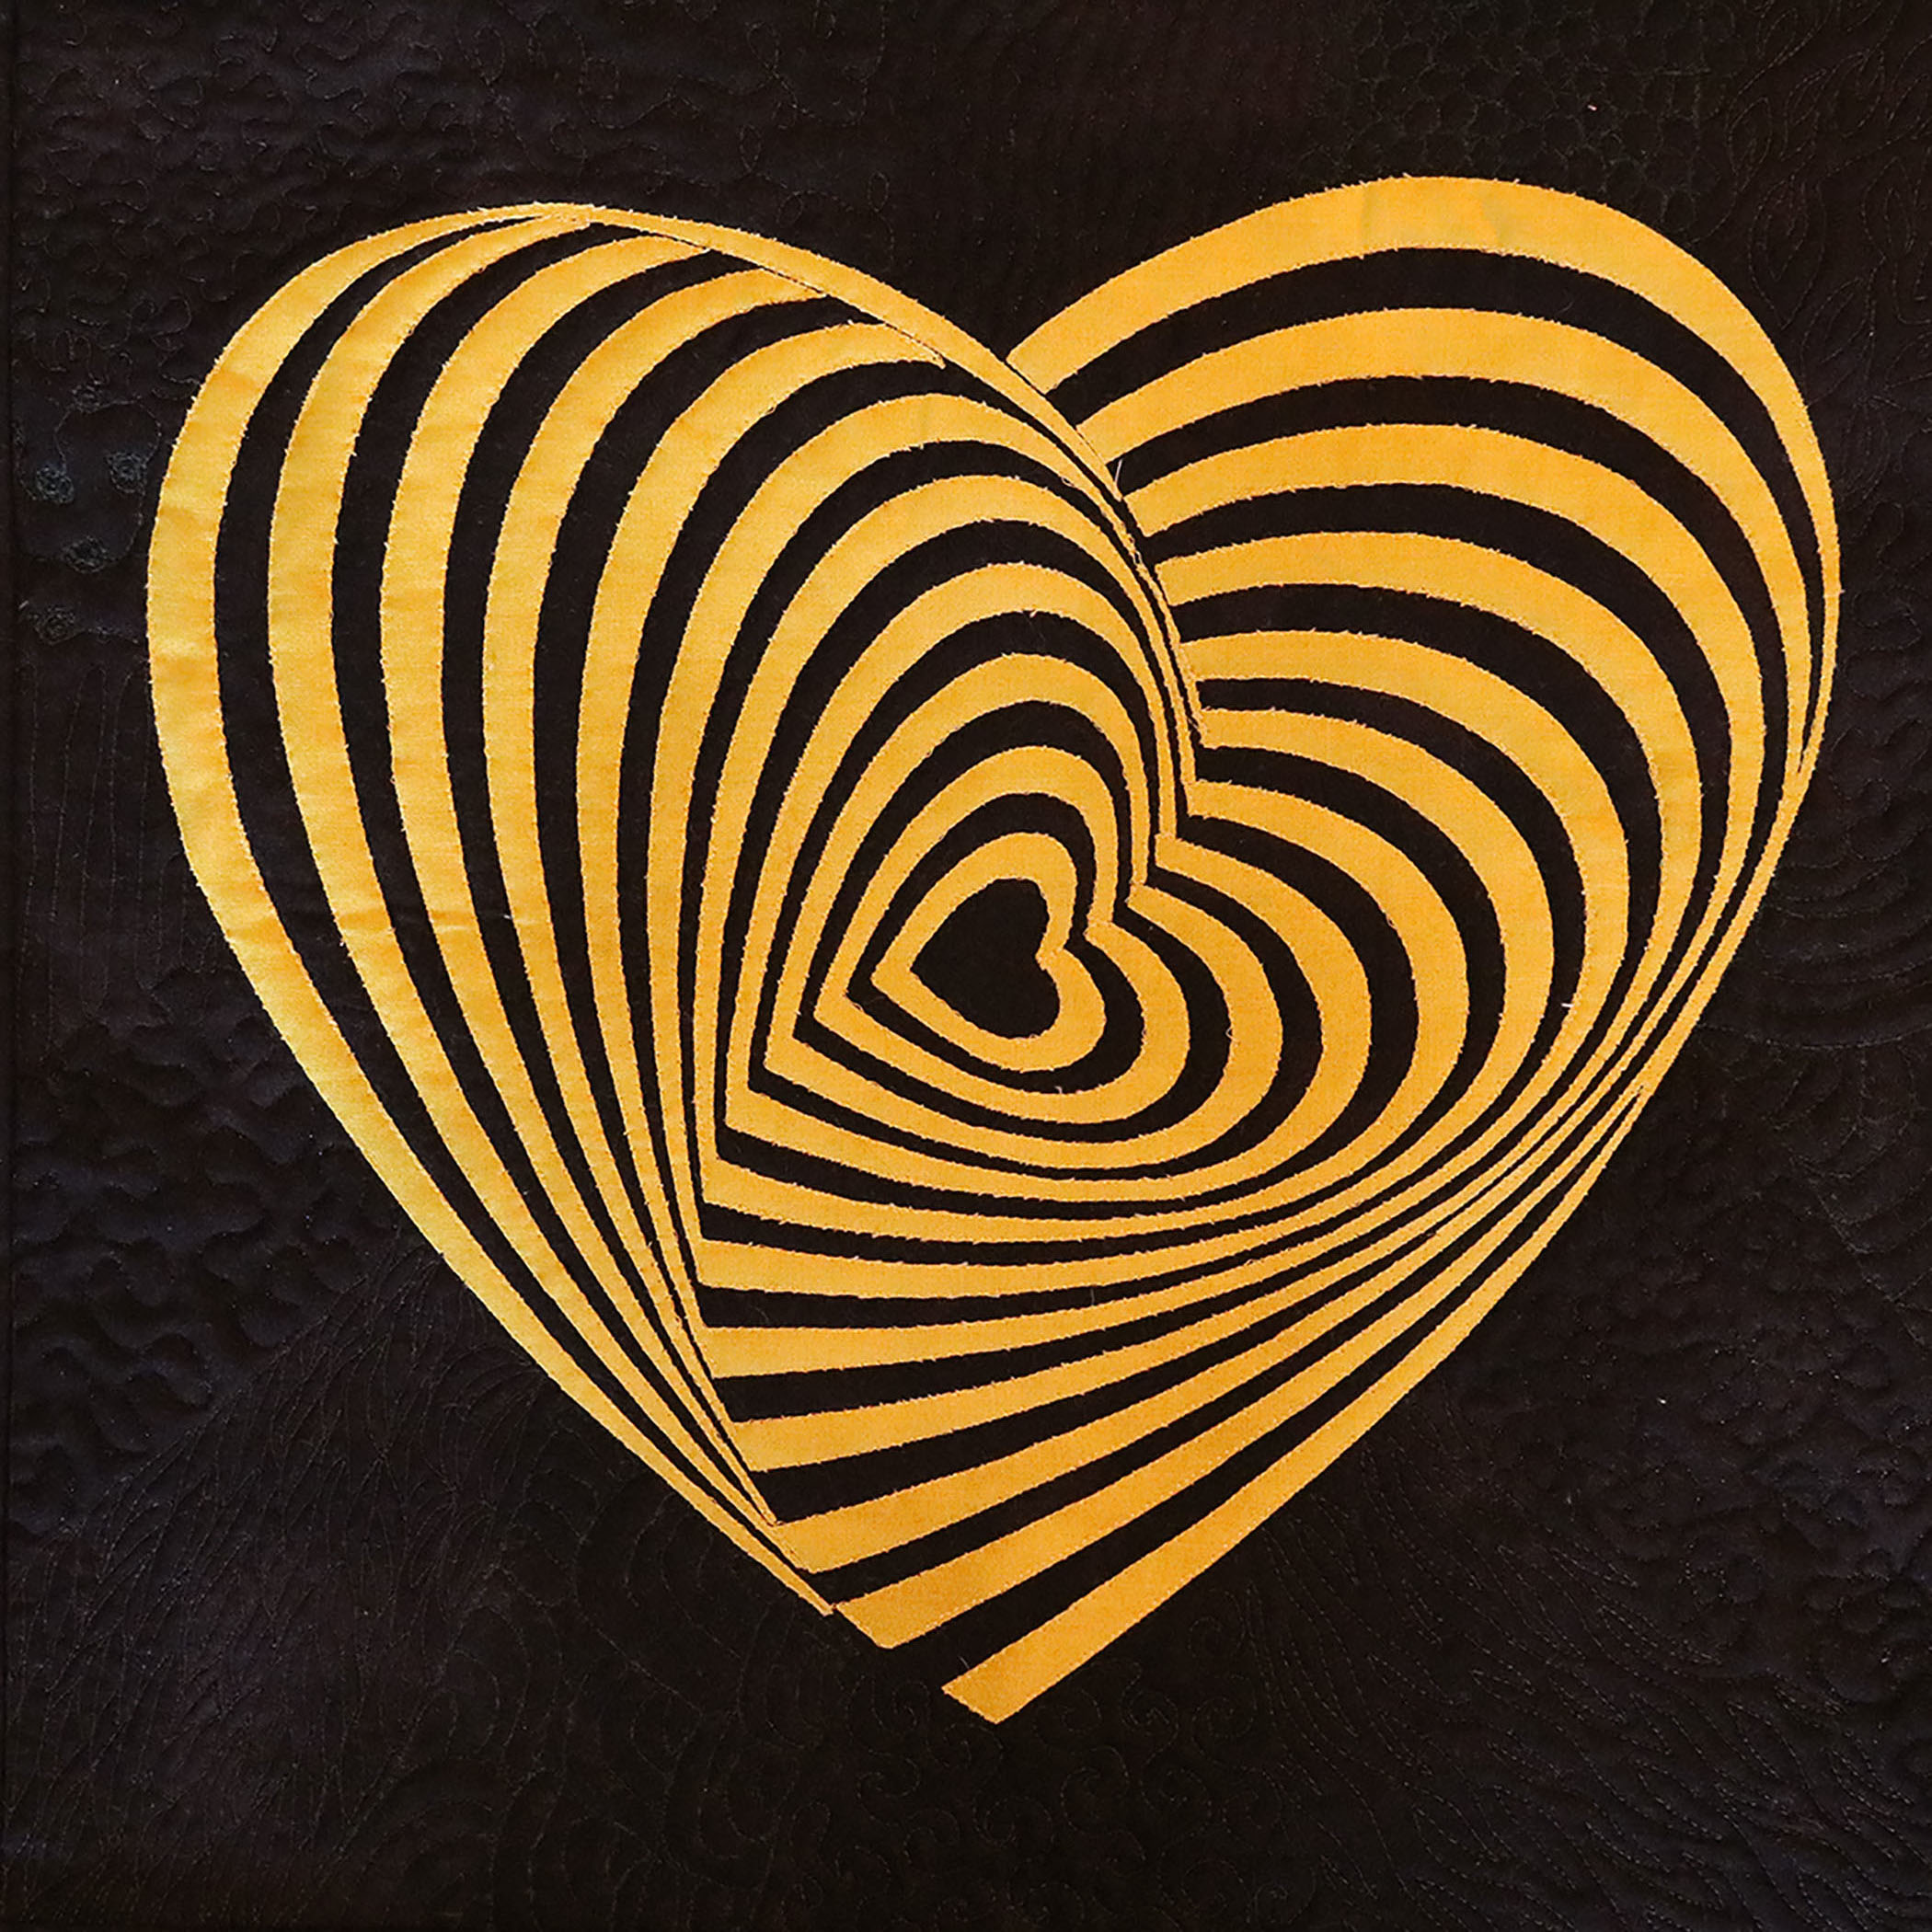 THIRD PLACE, <em>Hypnotic love</em>, María González Rico, Alcorcon, Spain